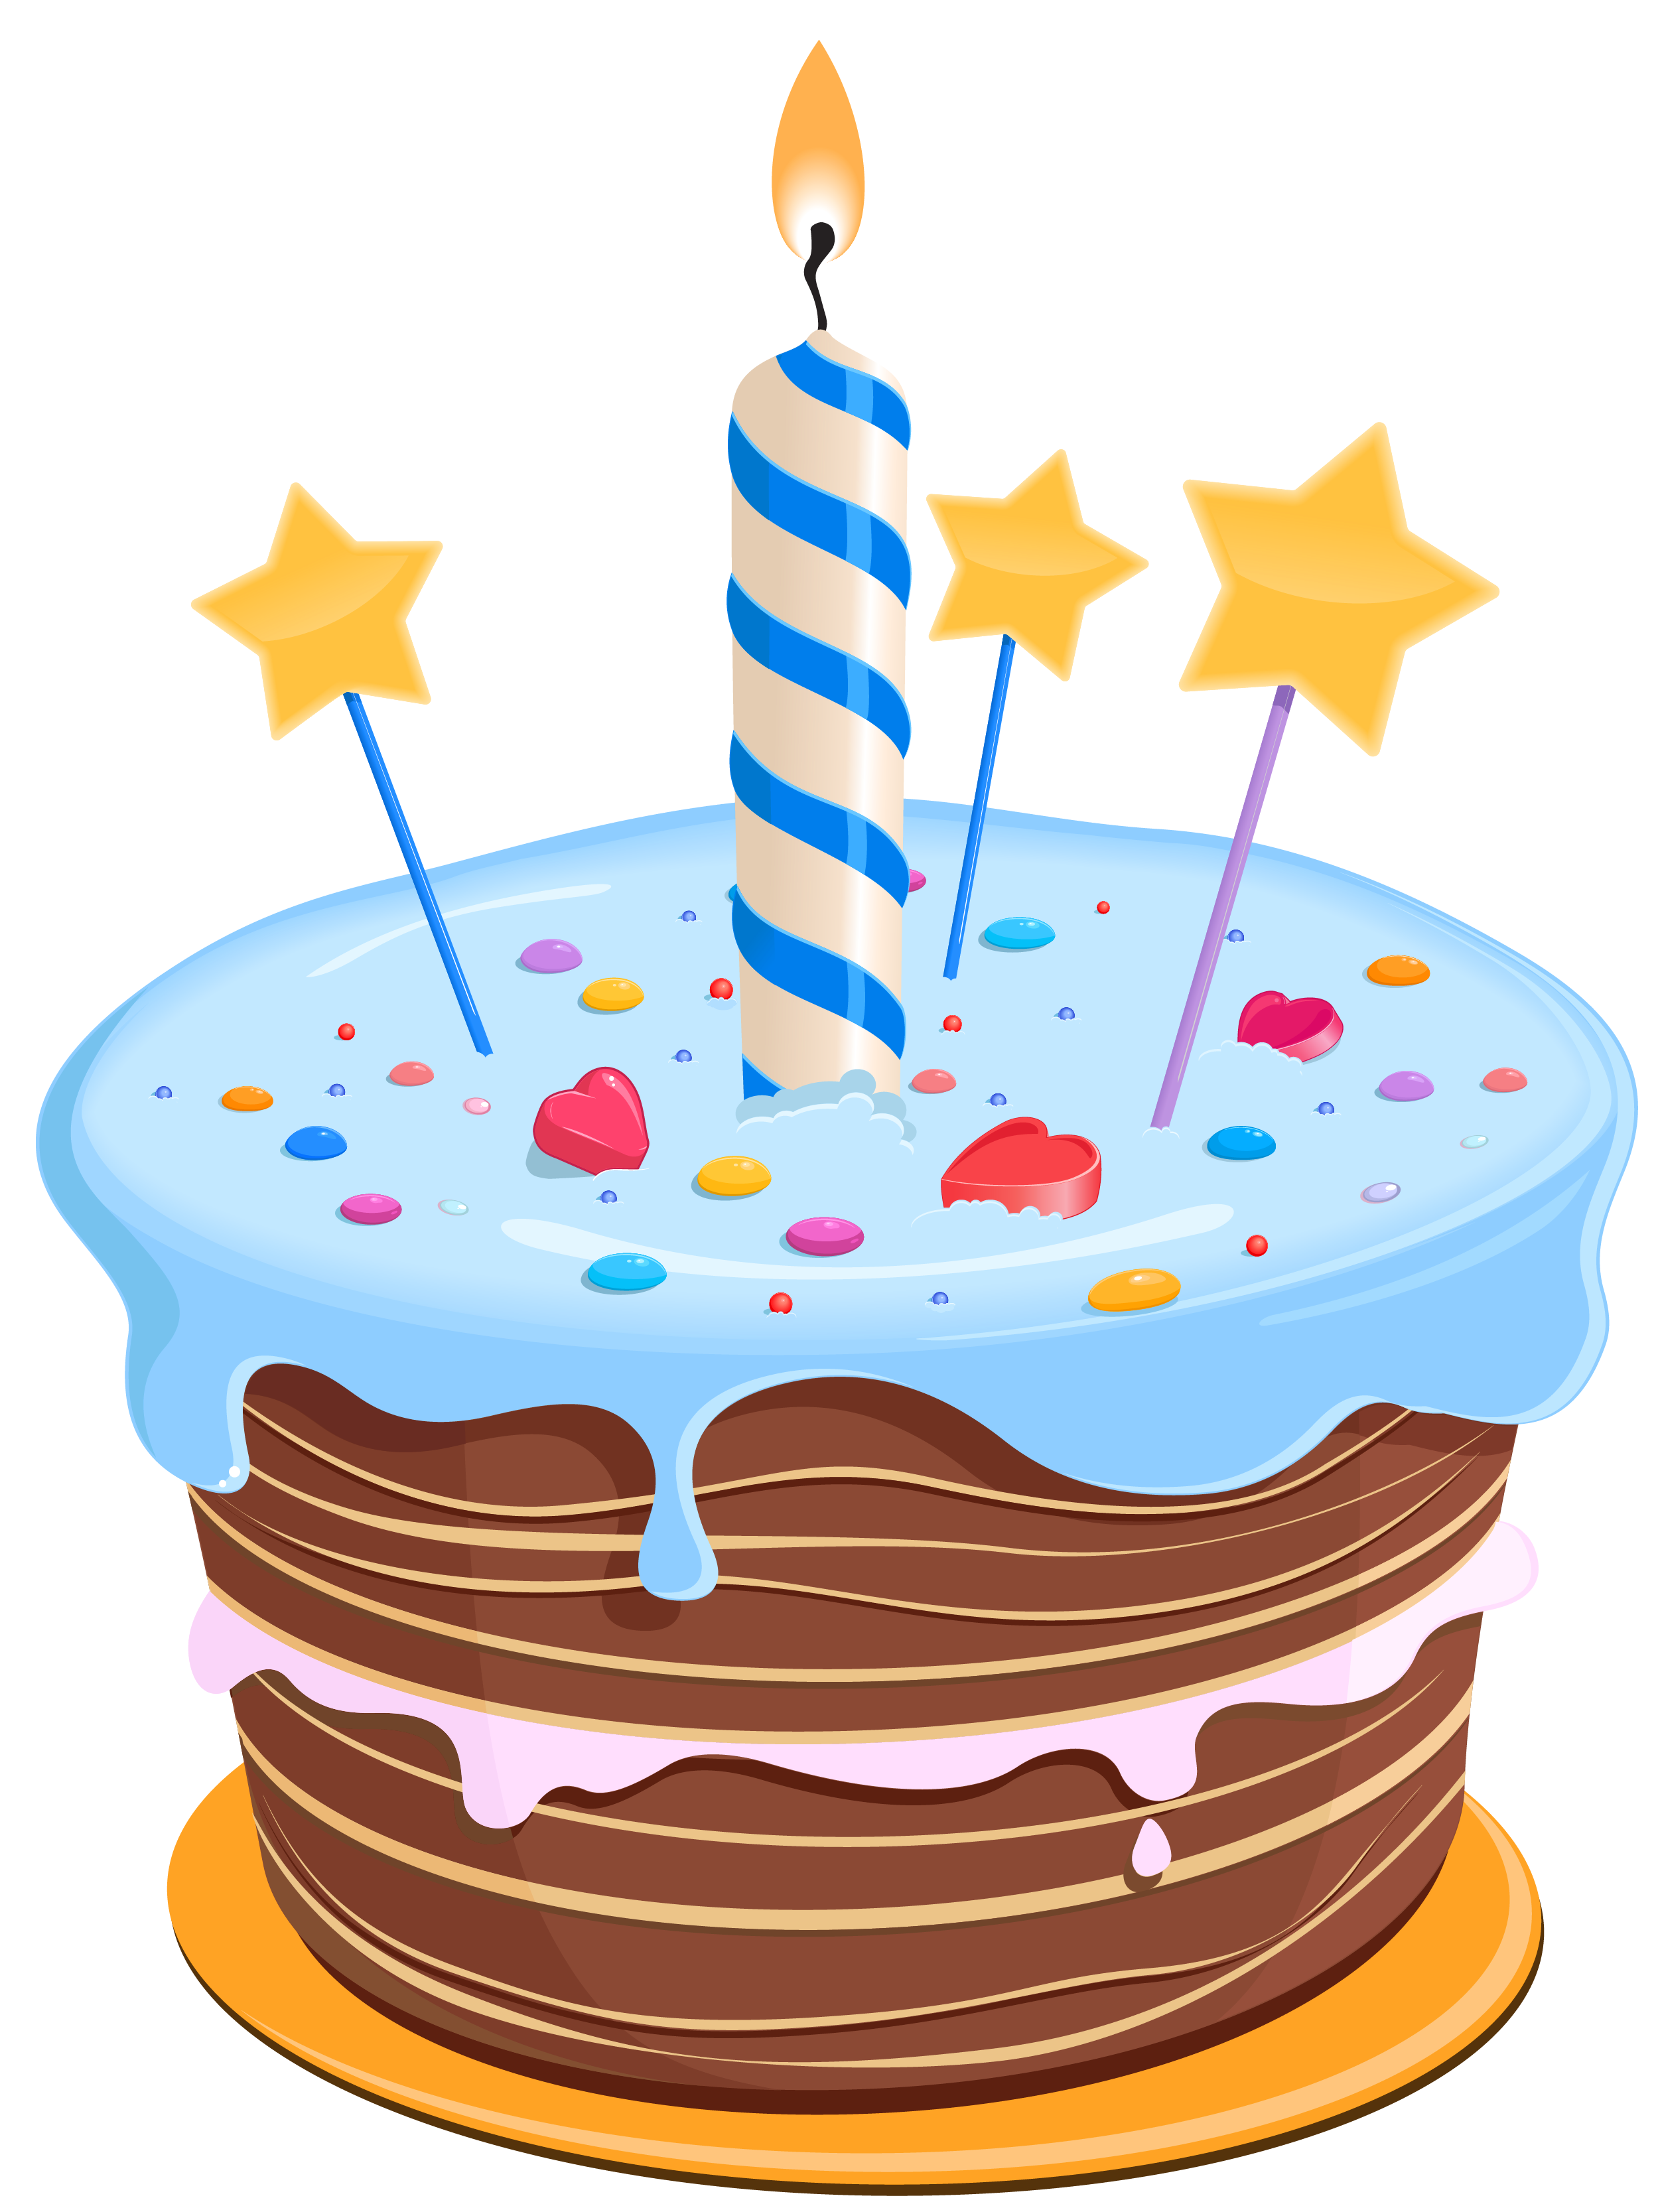 Birthday Cake Png Clipart PNG Image - Cake PNG